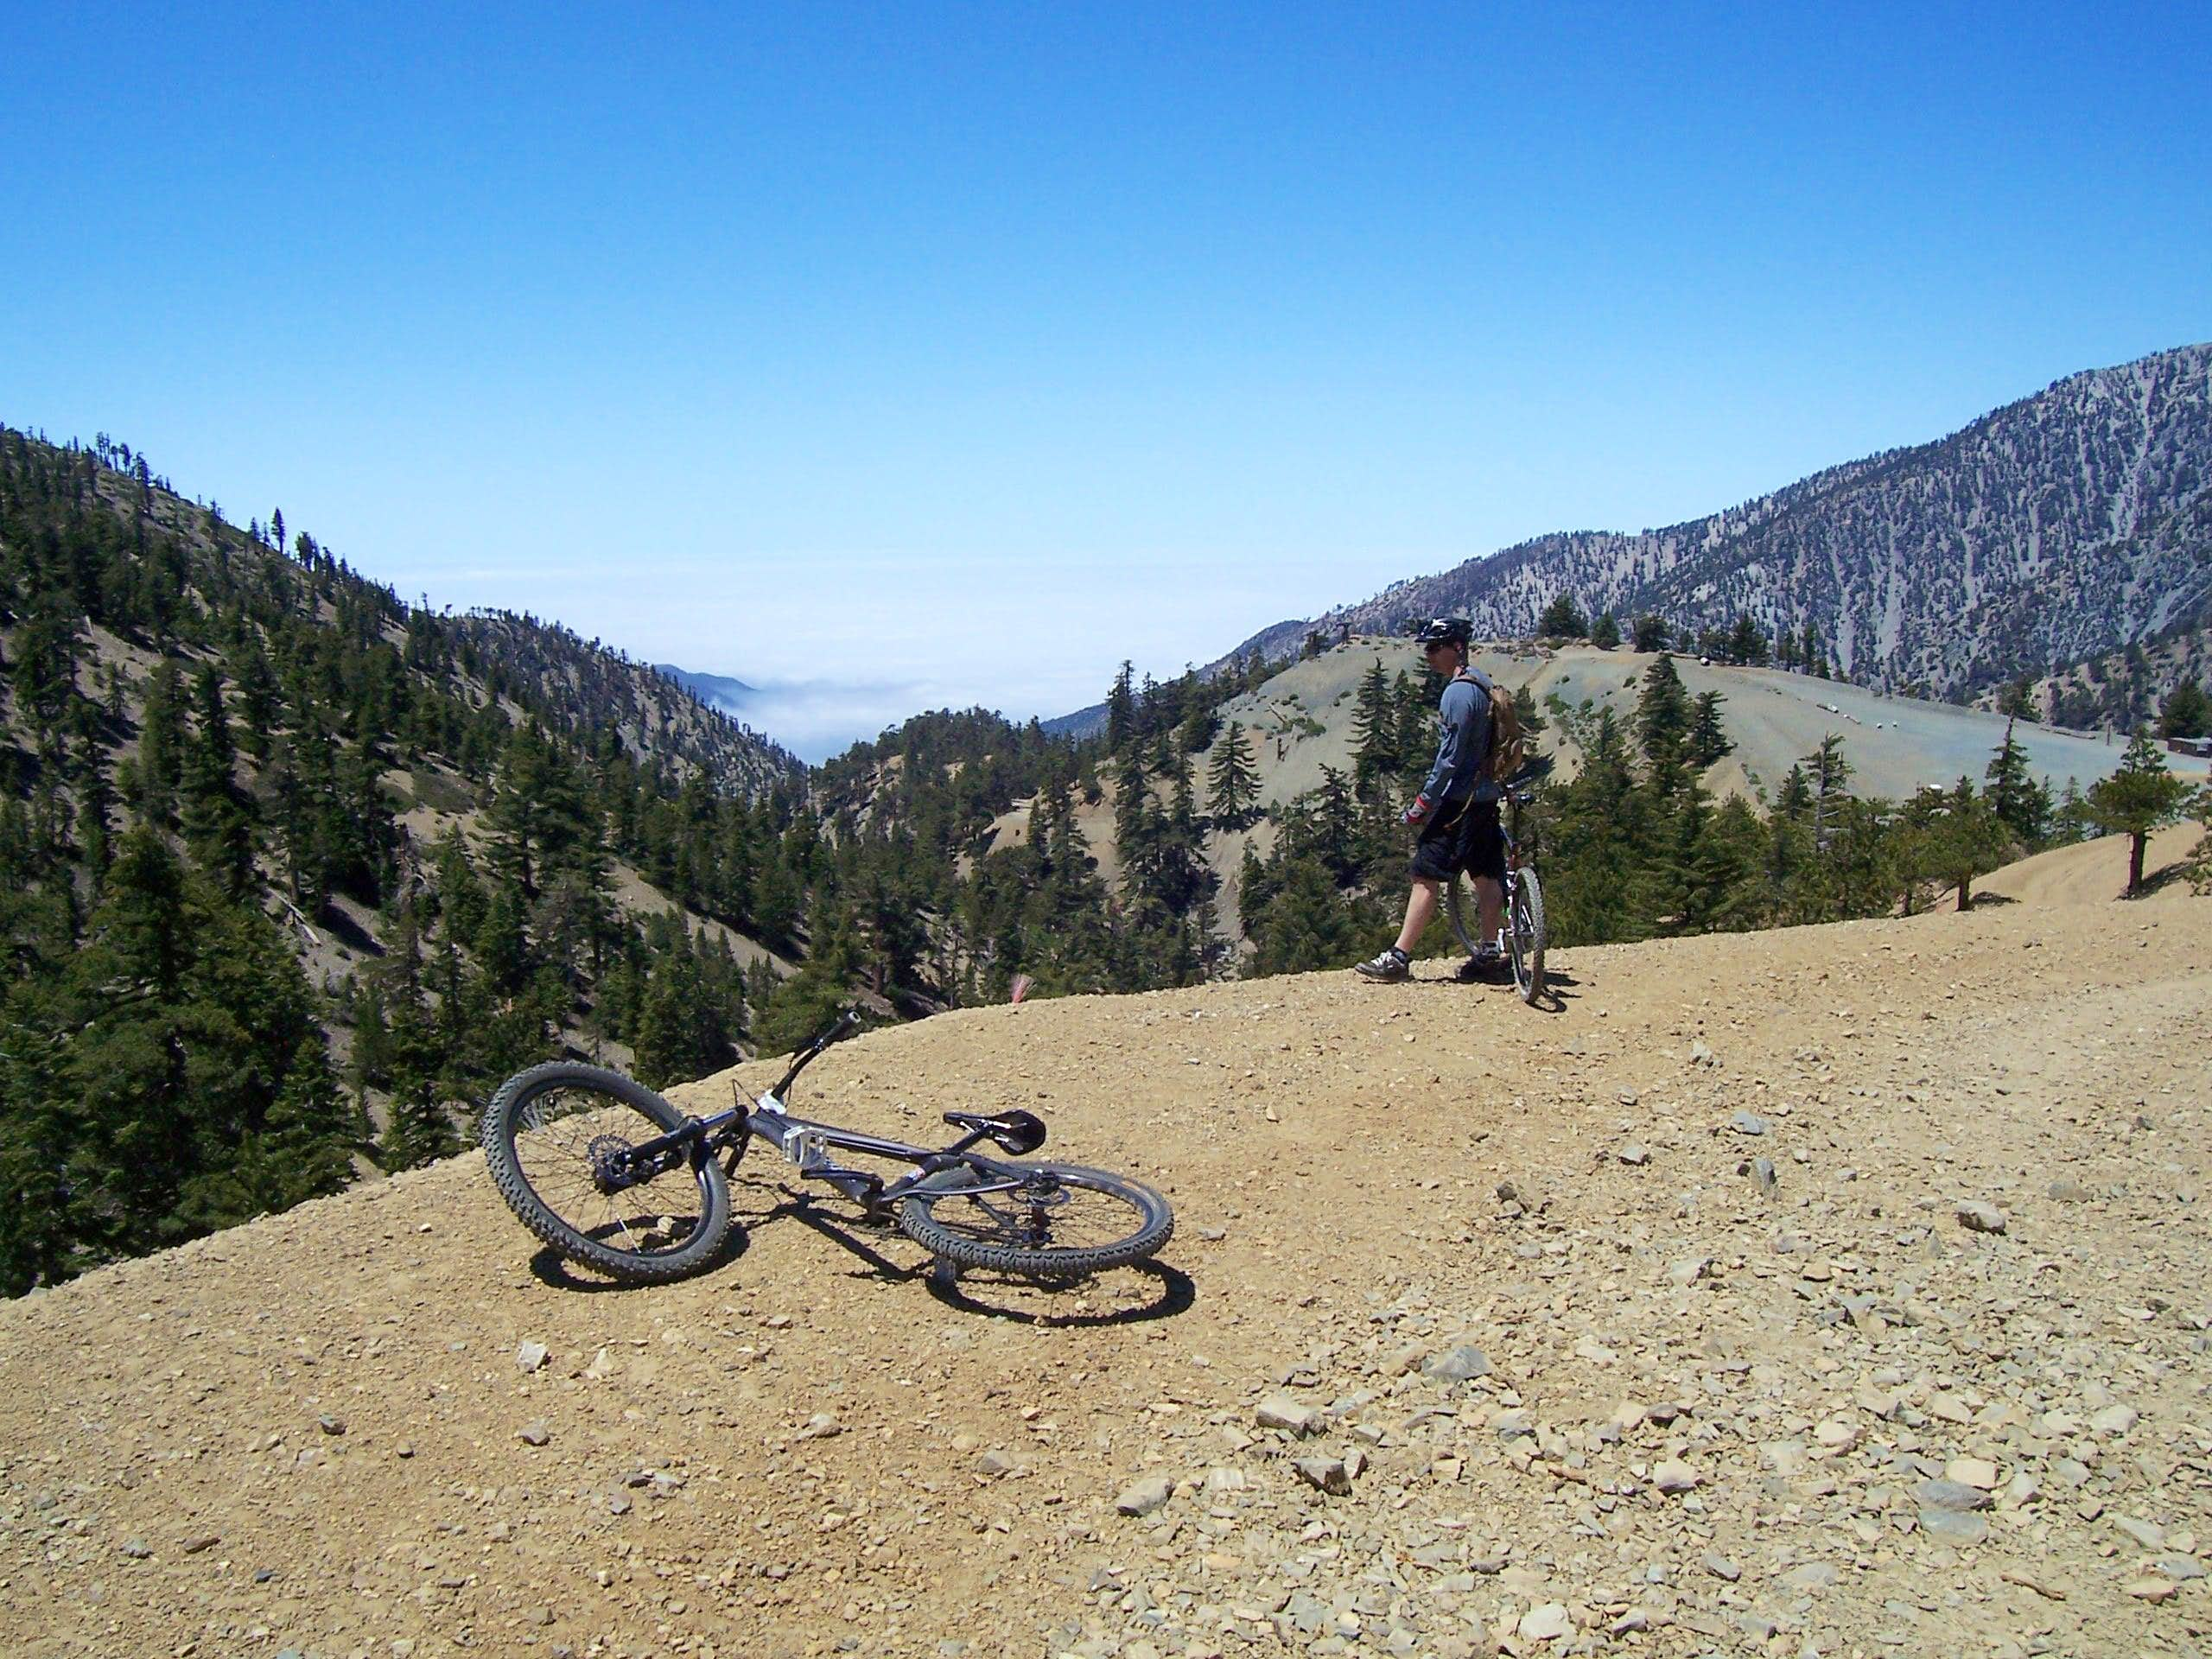 Thunder Mountain, San Gabriel Mountains